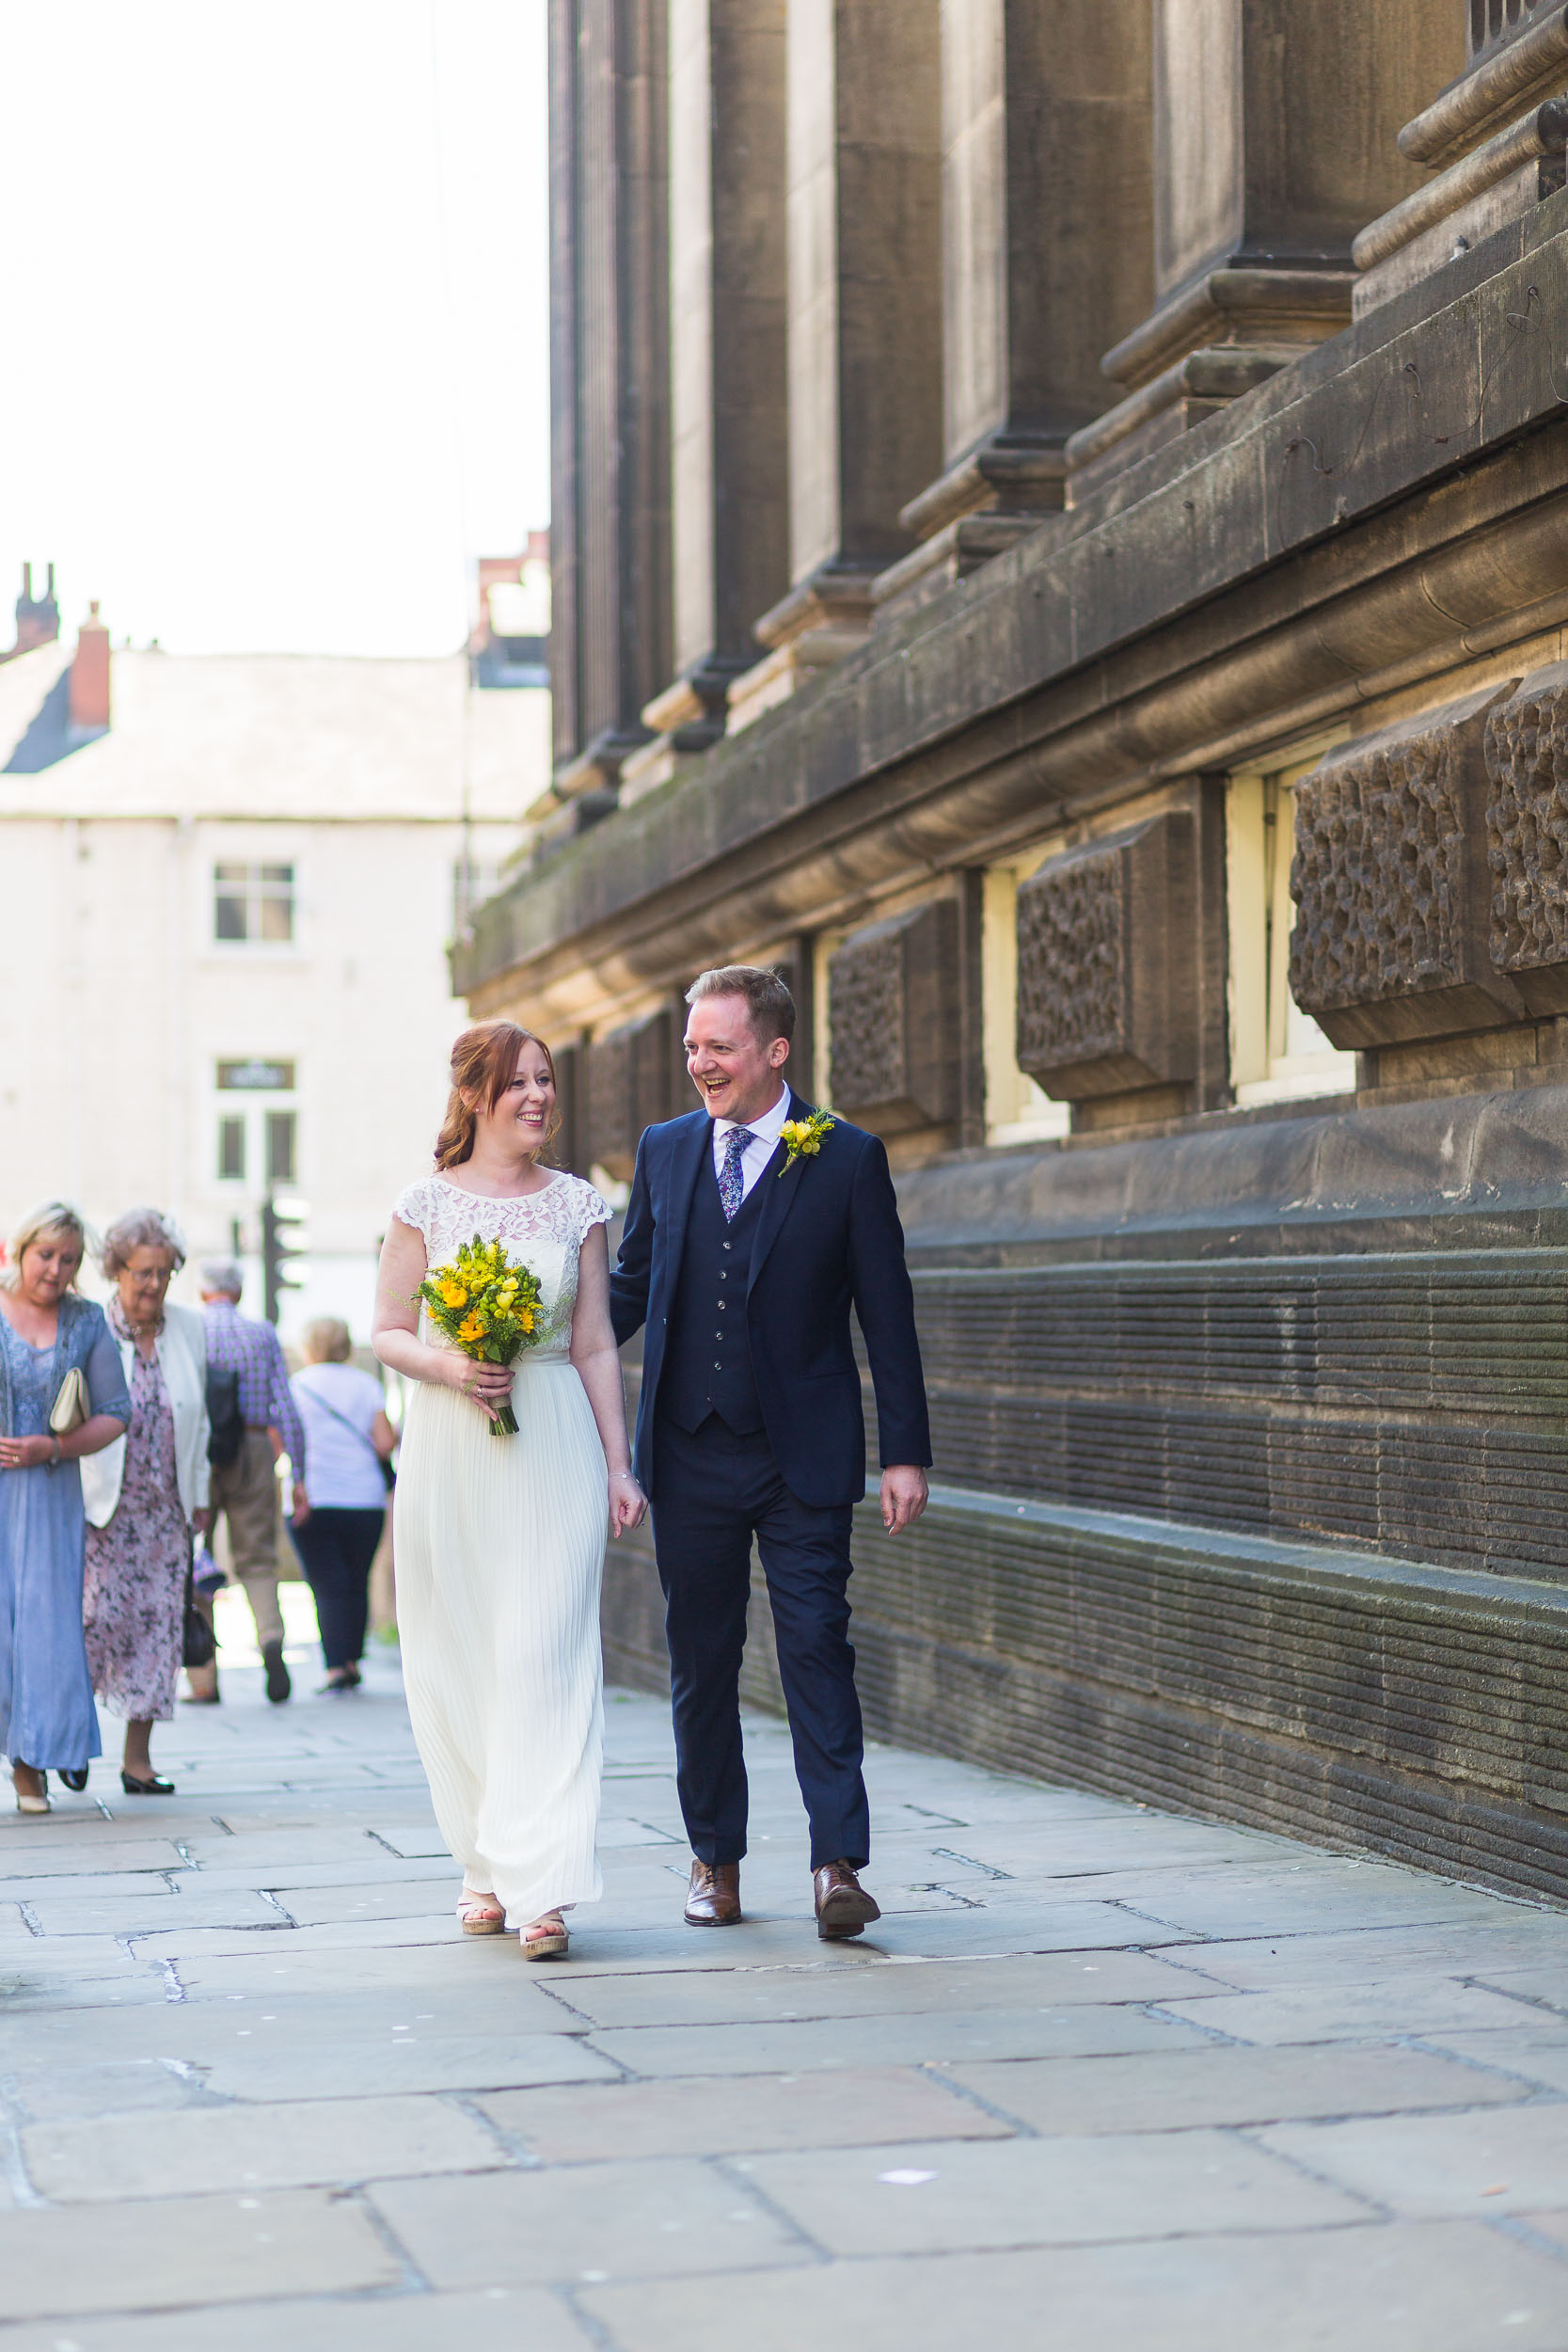 Amy & Oliver-Wedding Part I-Town Hall-Leeds-photo-0038.jpg